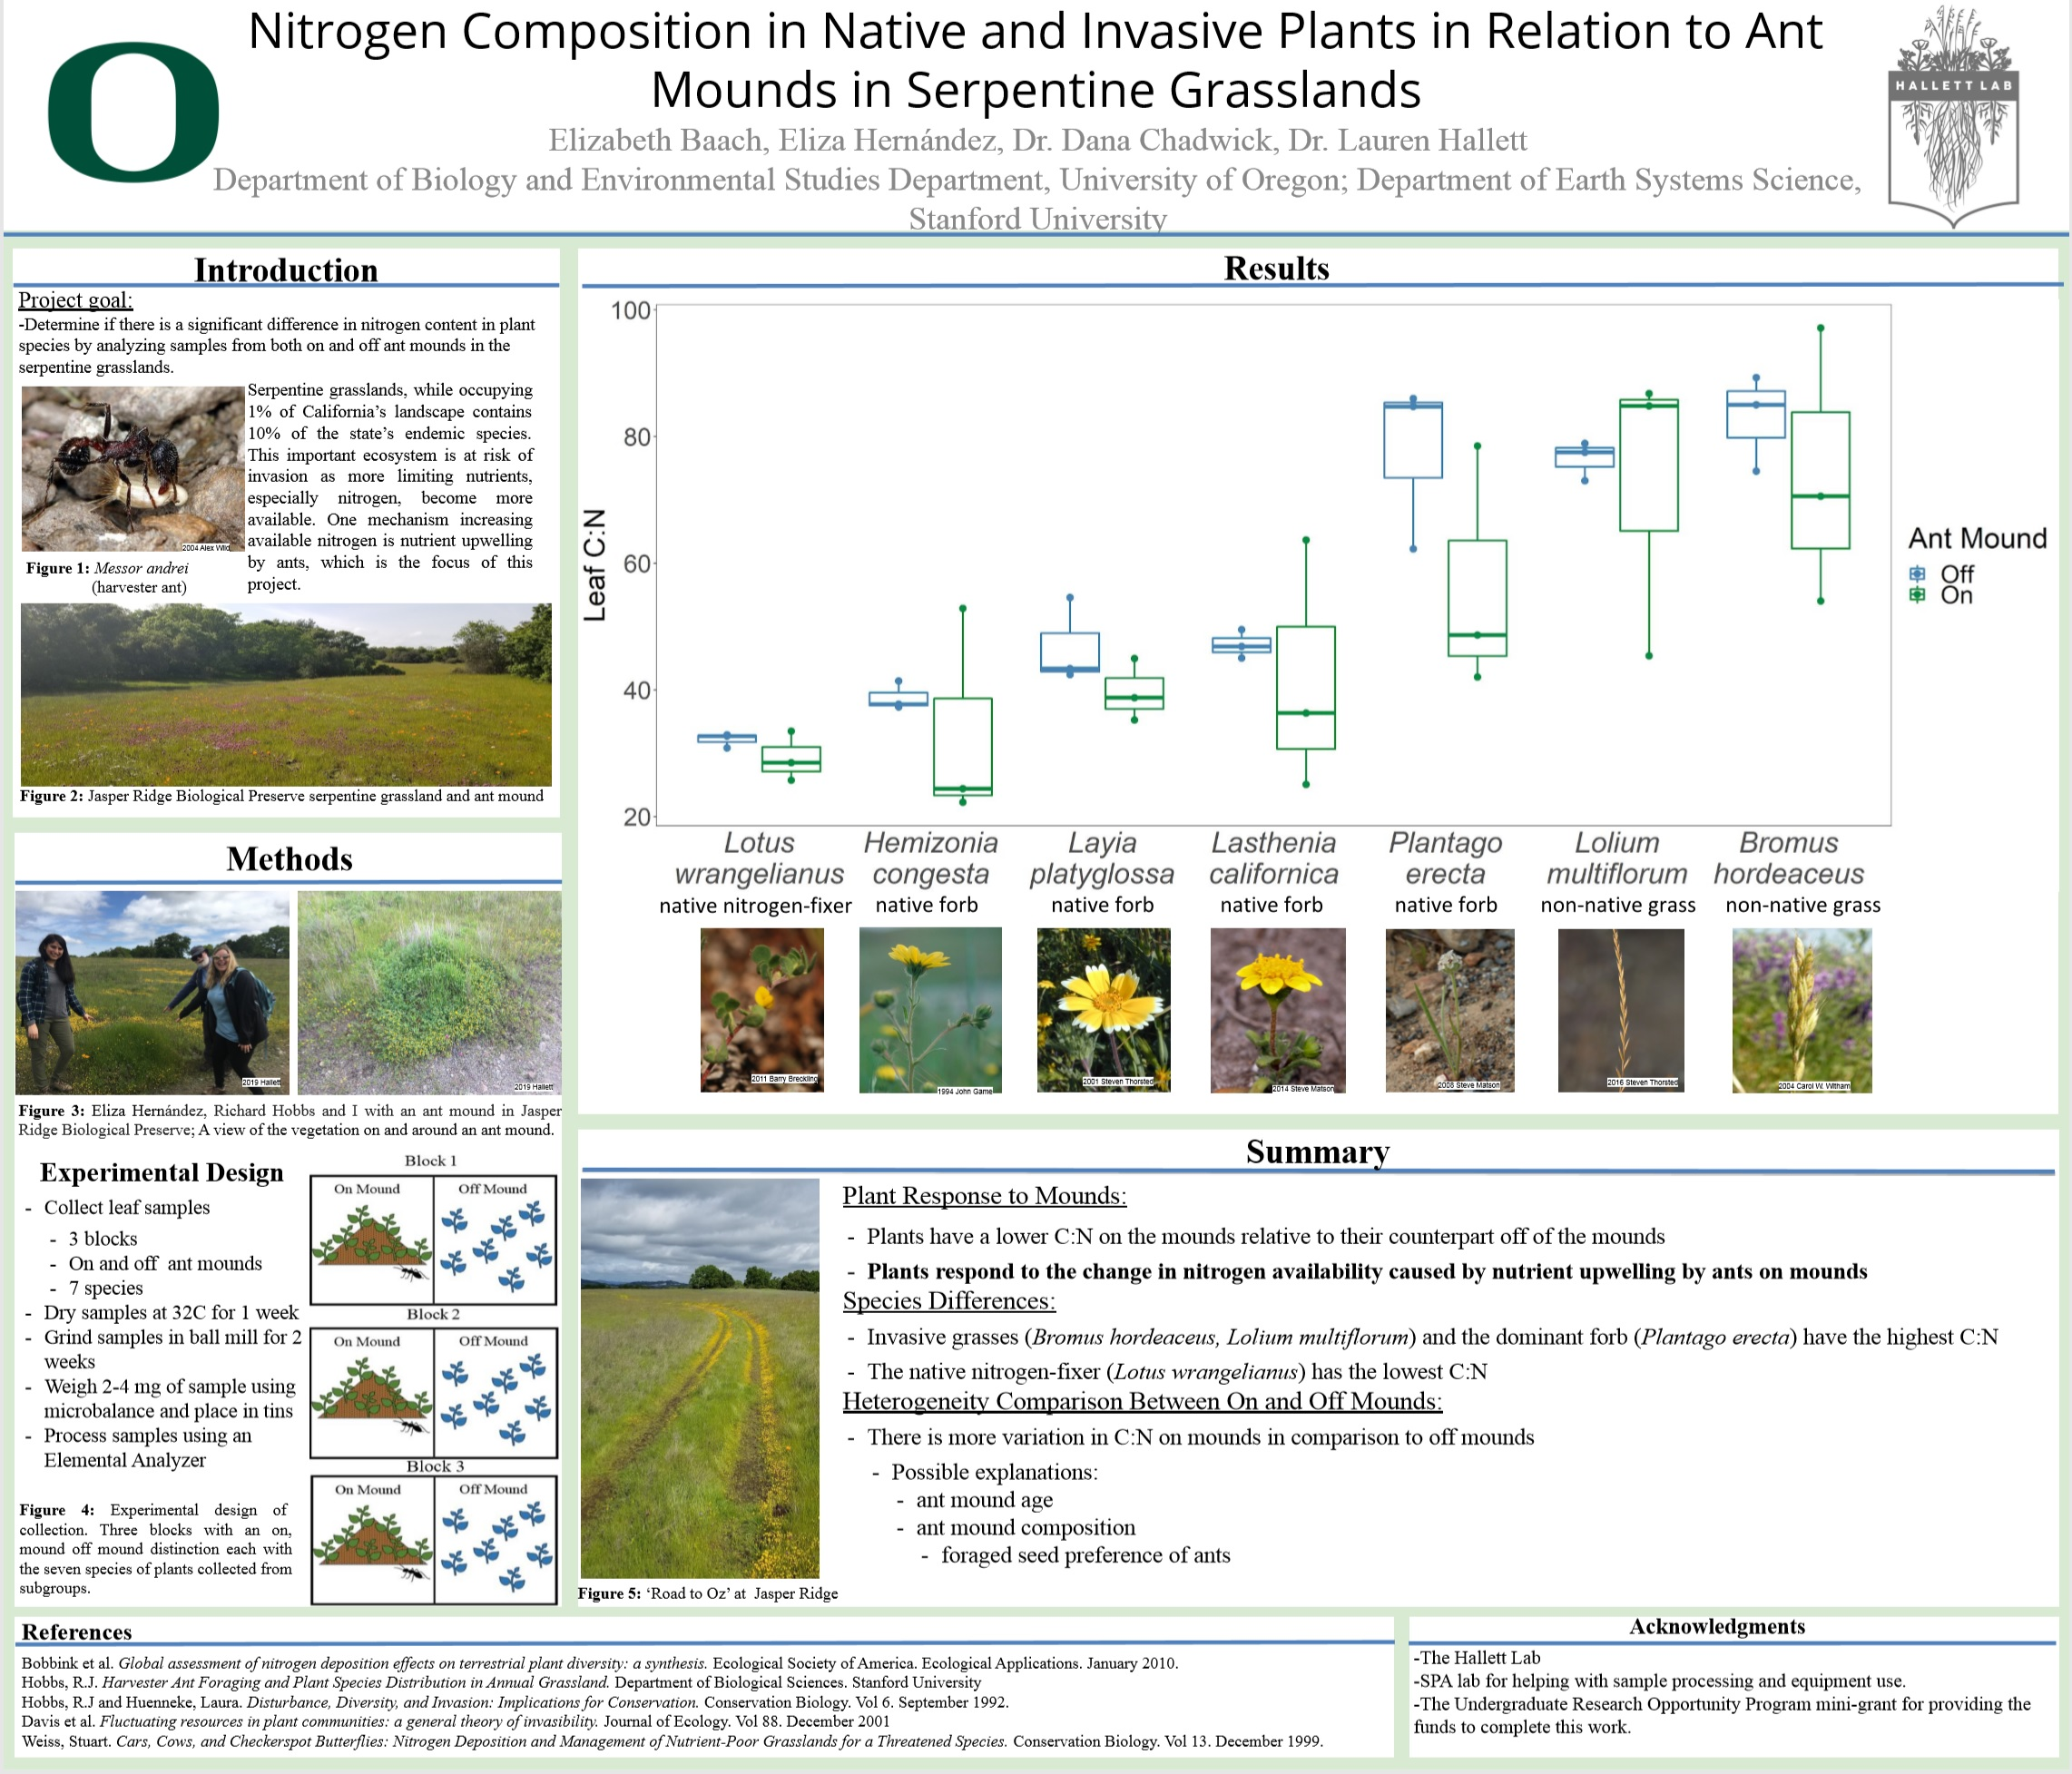 Elizabeth presented her poster at the UO Undergraduate Research Symposium